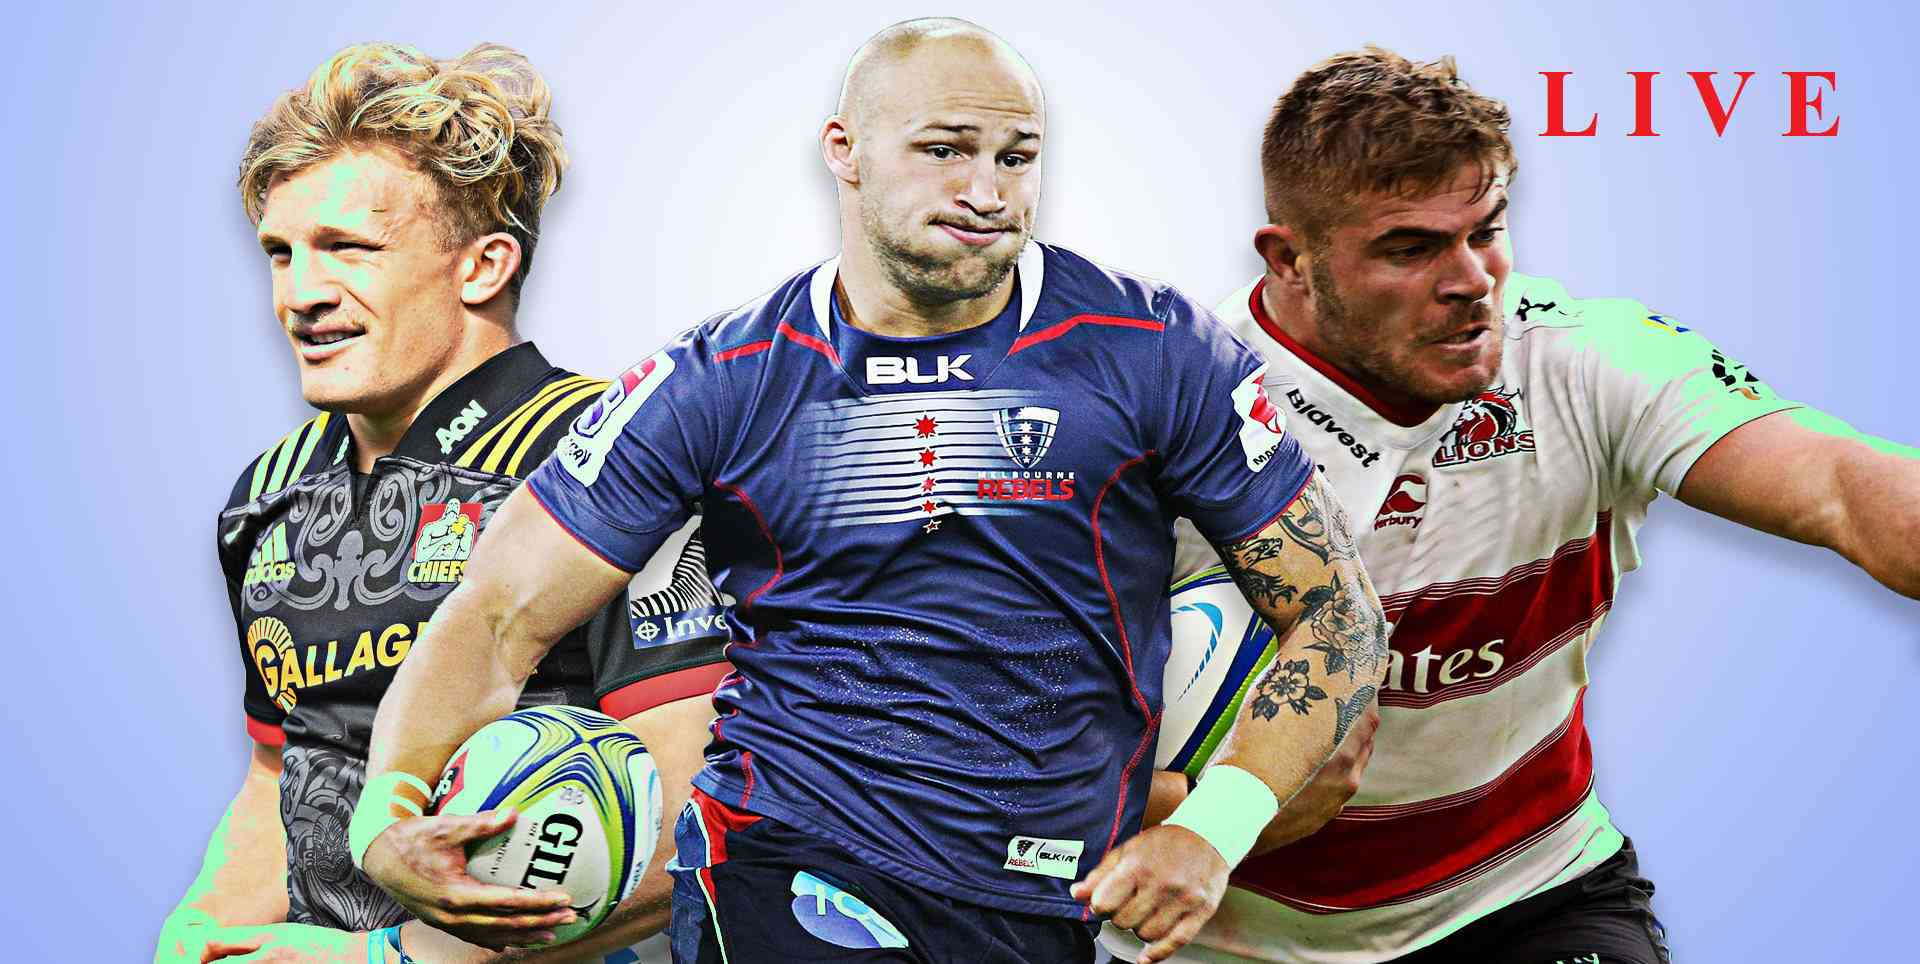 six-nations-rugby-2017-live-streaming-|dates-|-schedule-and-fixture|-watch-online